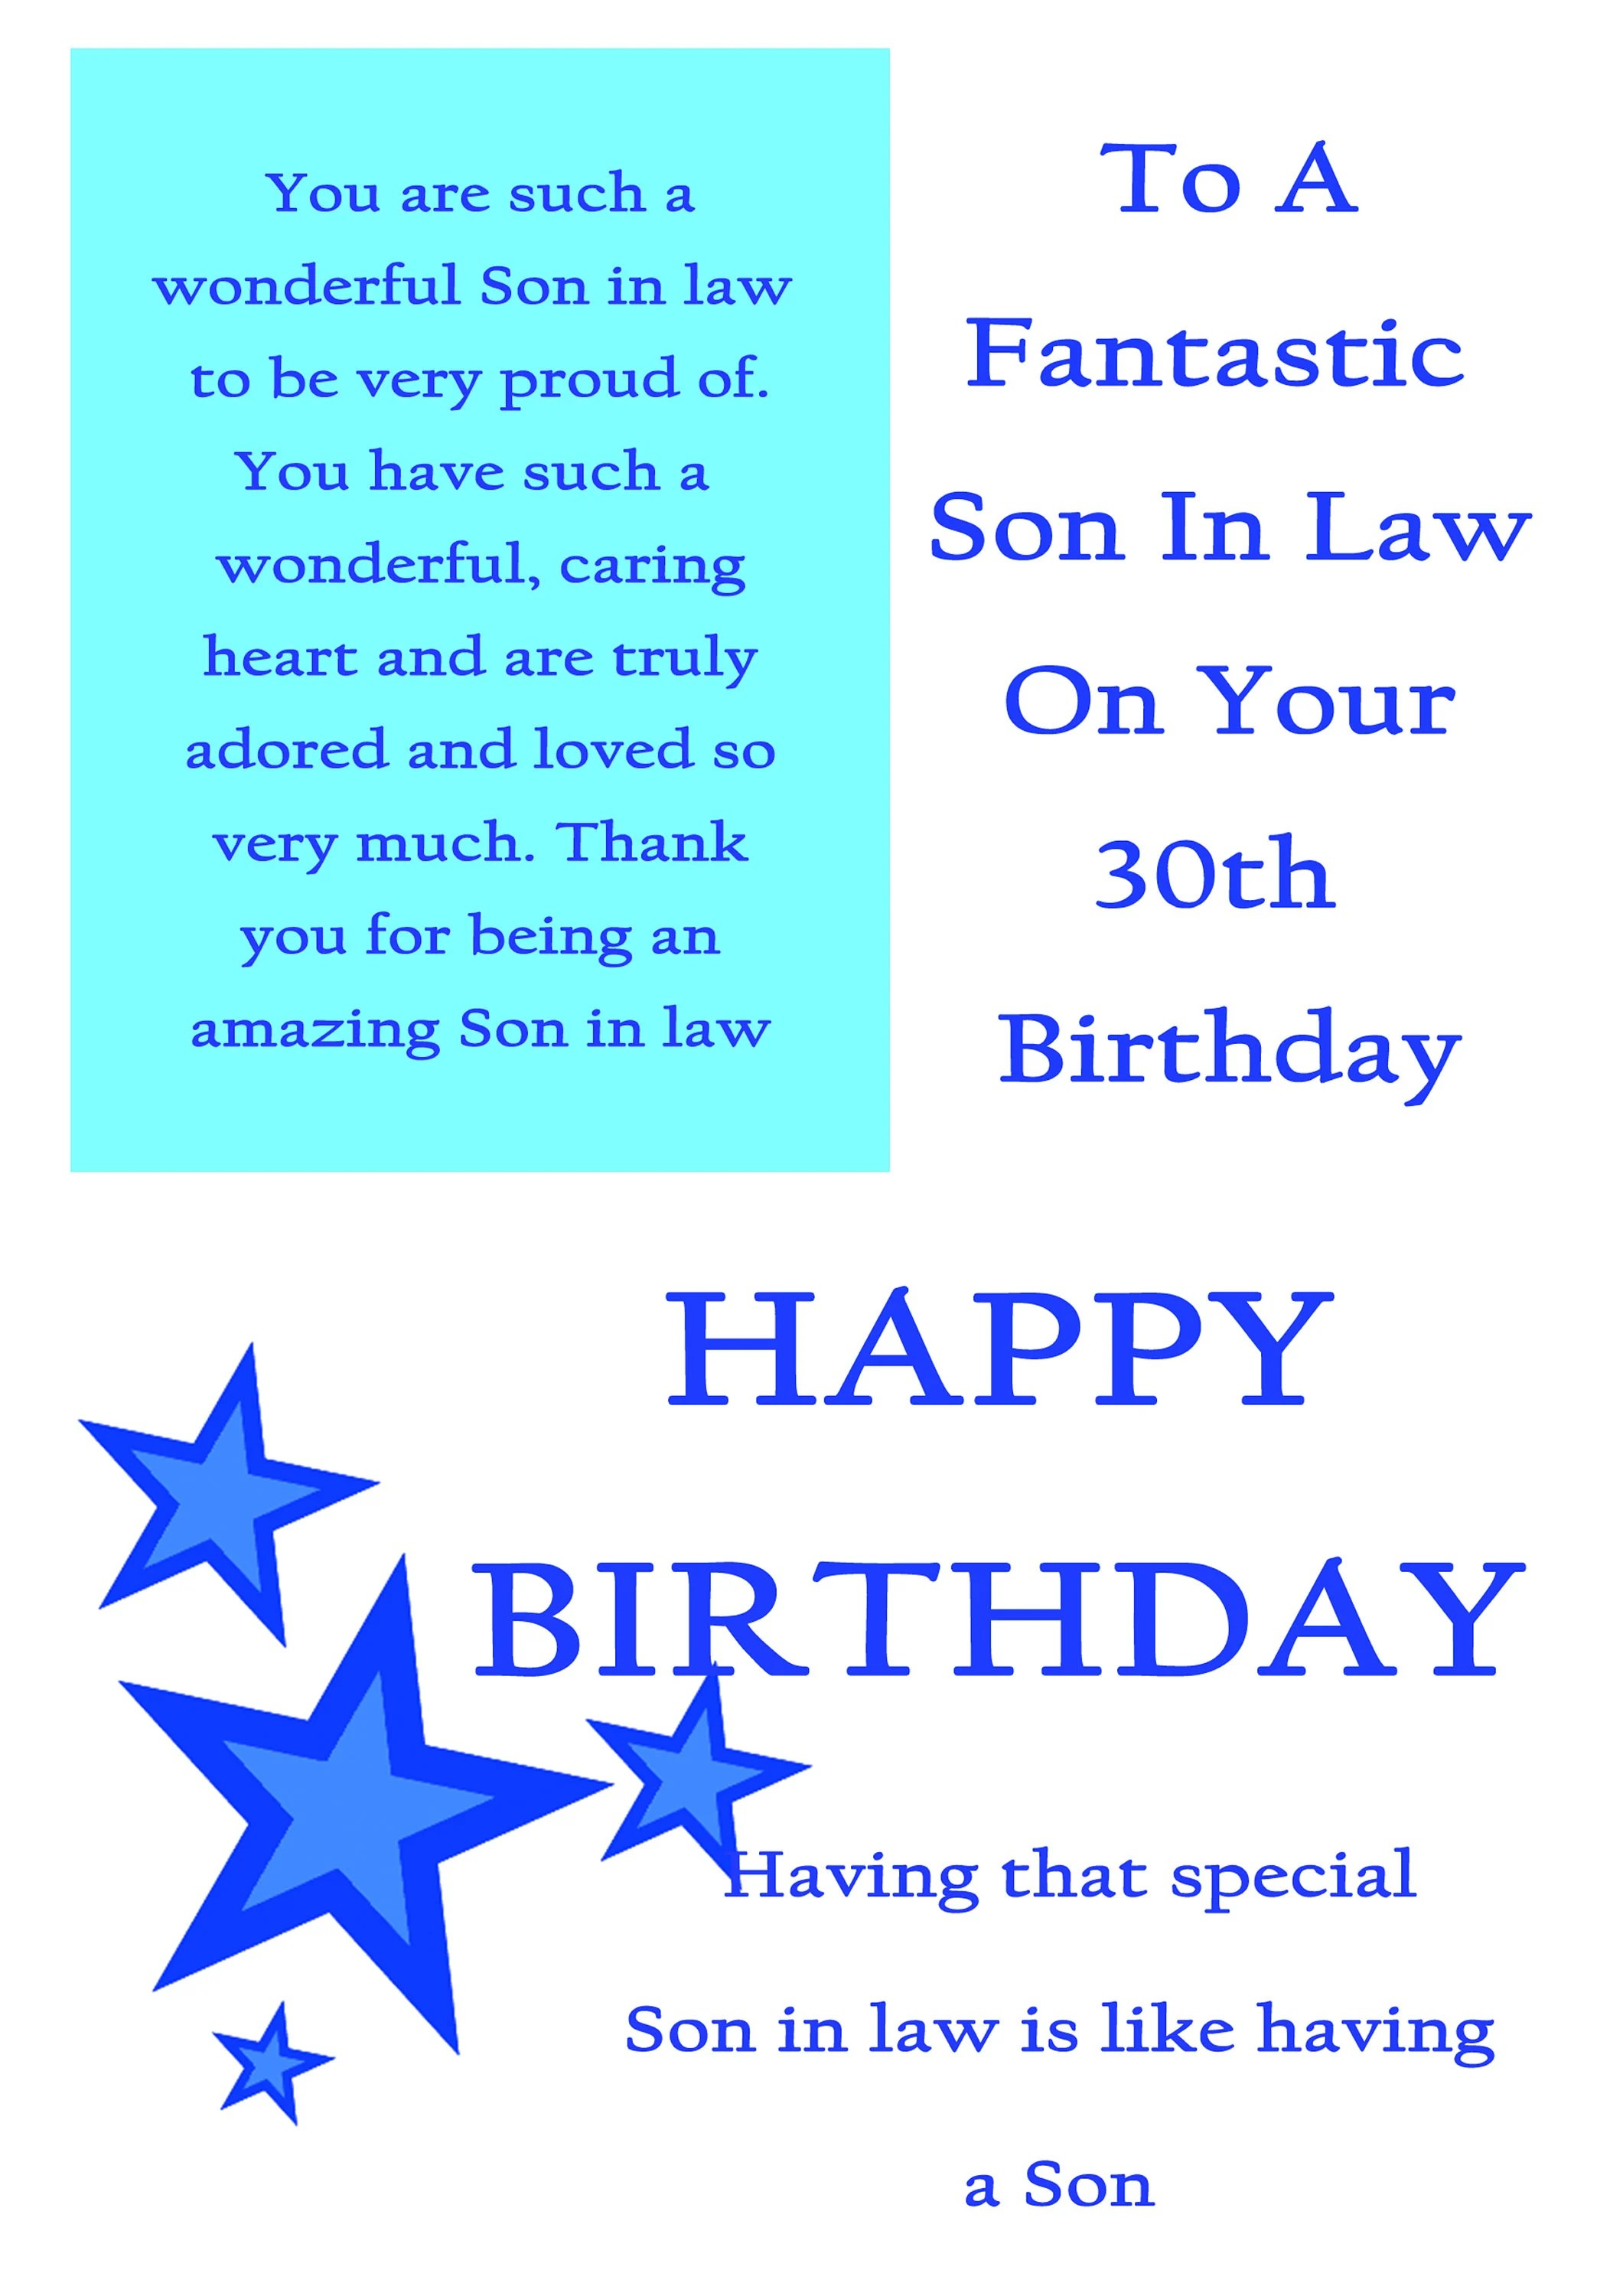 Son In Law 30 Birthday Card With Removable Laminate Etsy